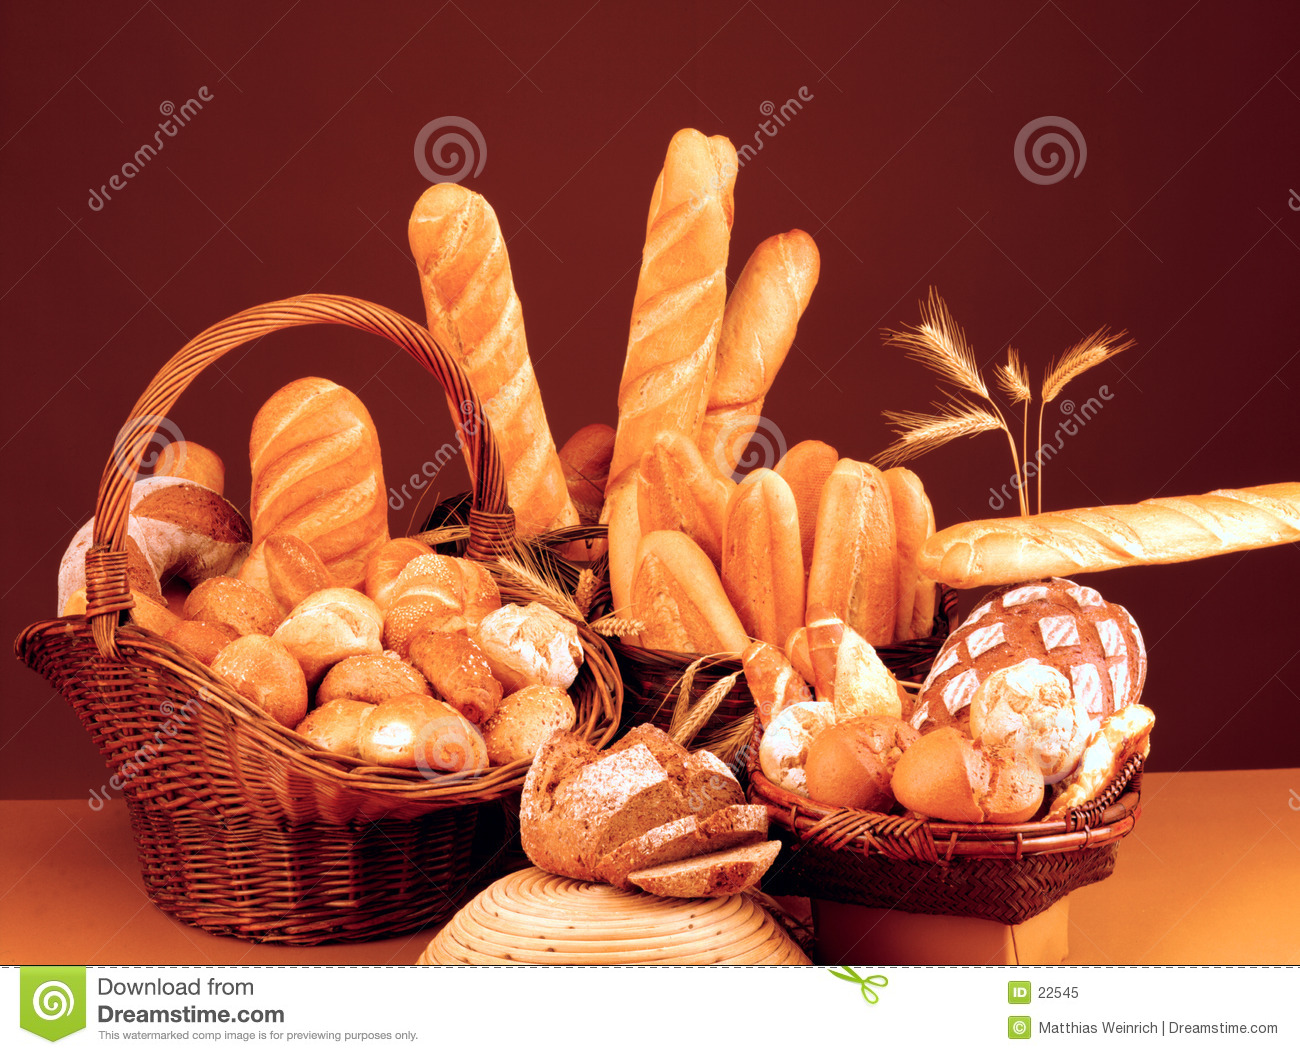 Still life with bread, rolls and baguette